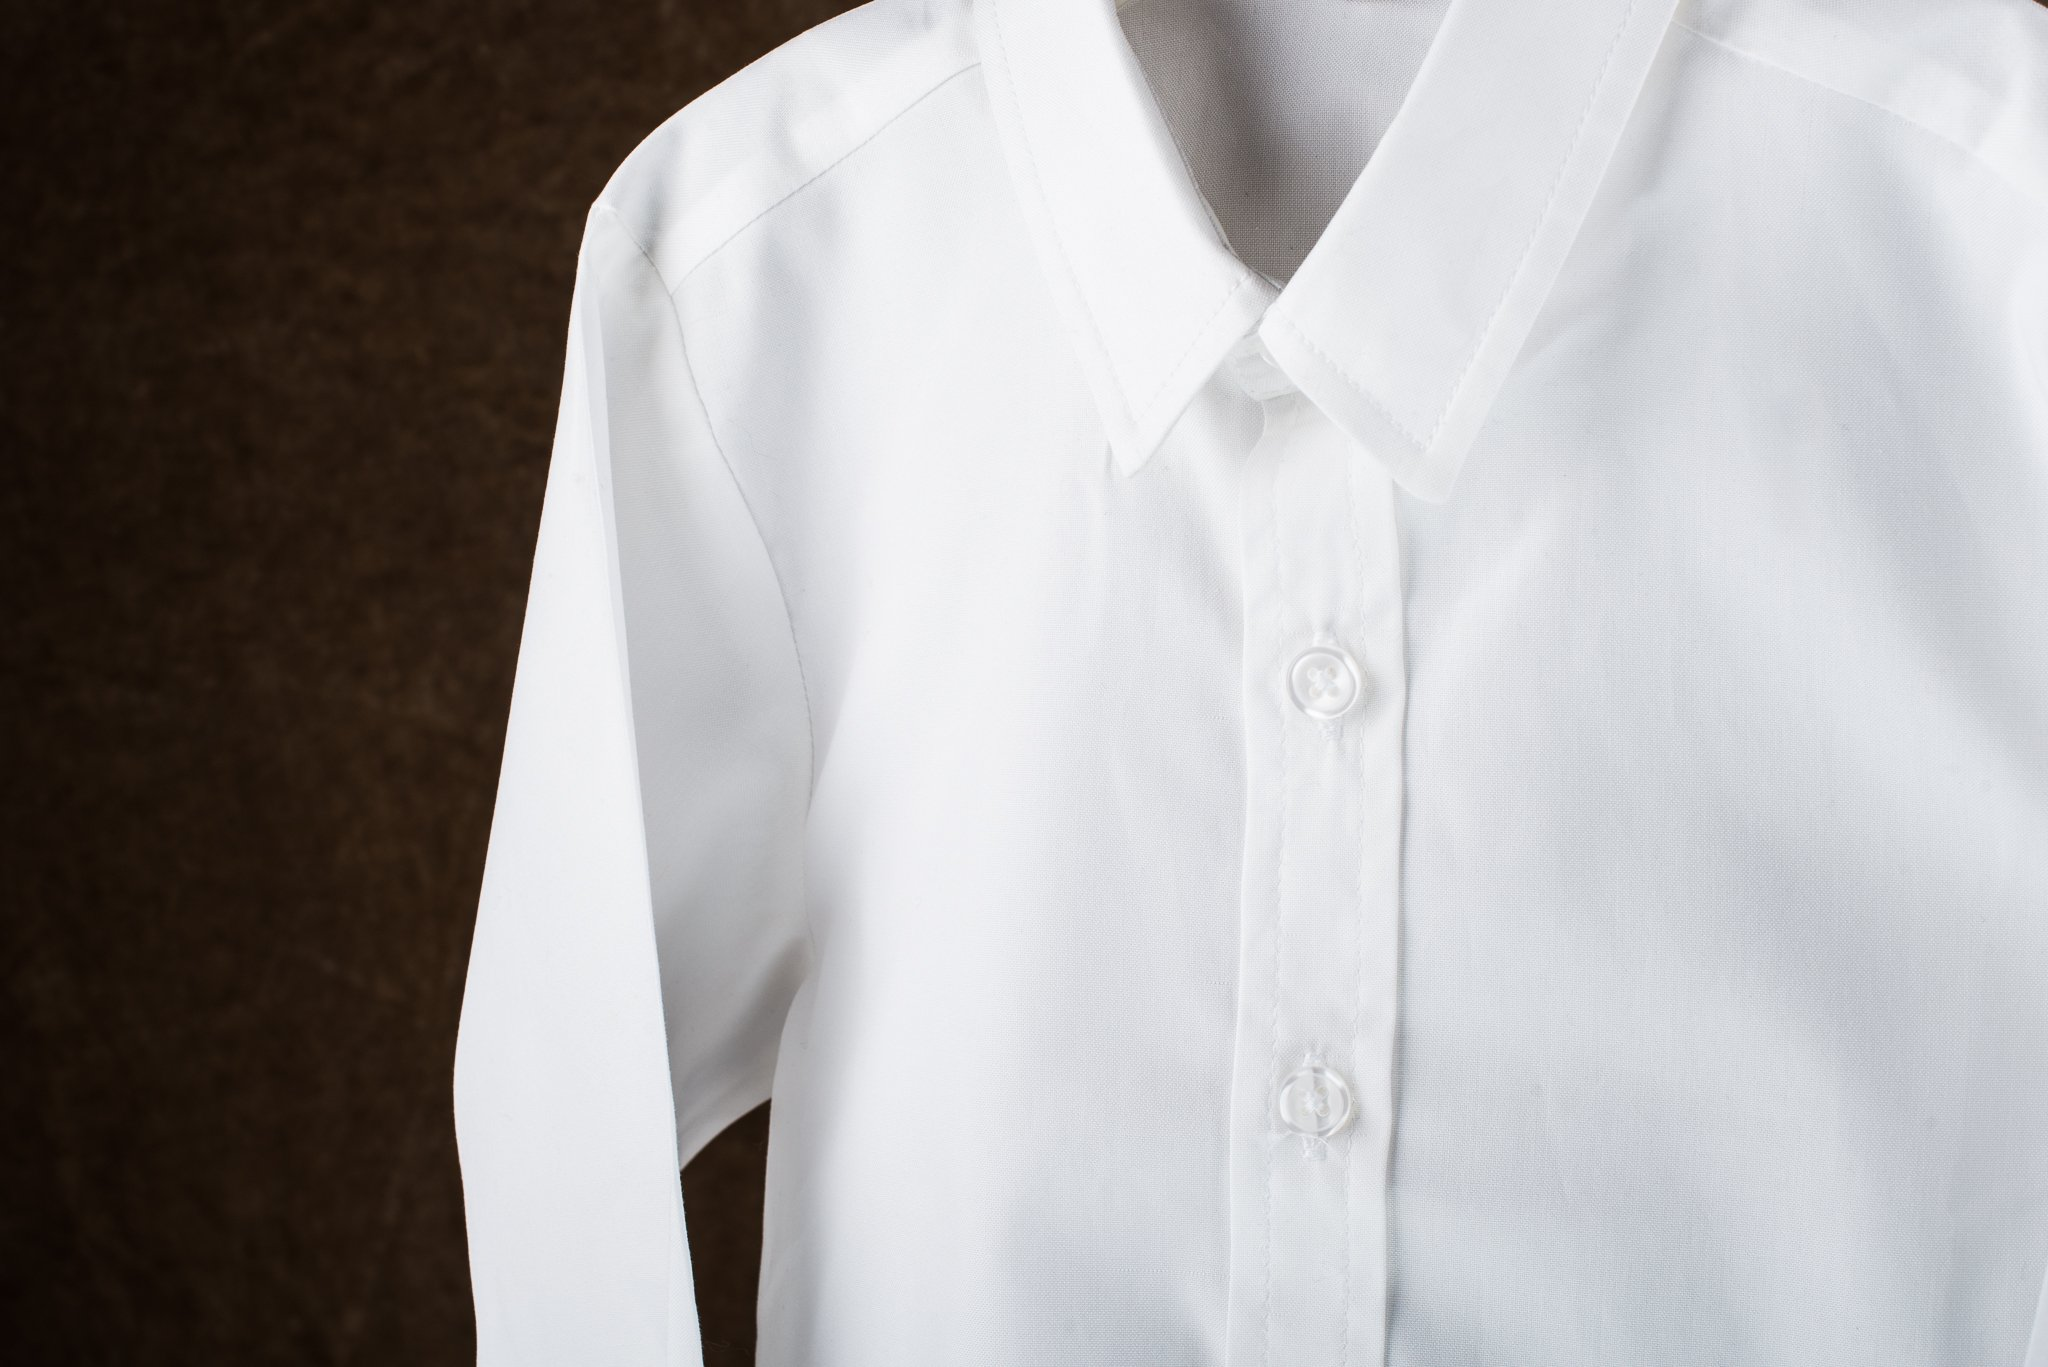 Born to Love - Wedding Baptism Birthday White Button-Up Shirt - Infant, Toddler & Boys 2T by Born to Love (Image #3)